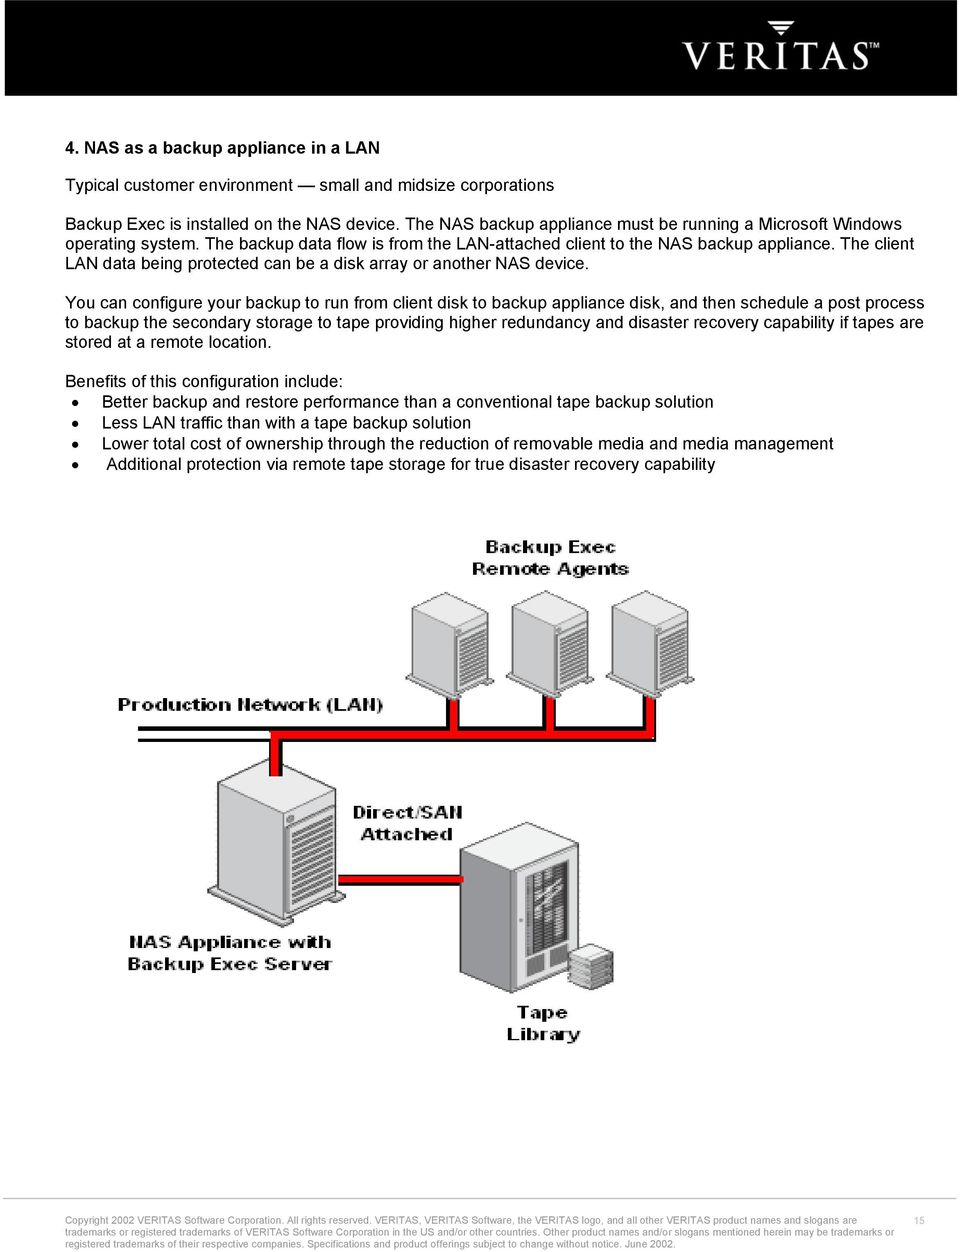 The client LAN data being protected can be a disk array or another NAS device.